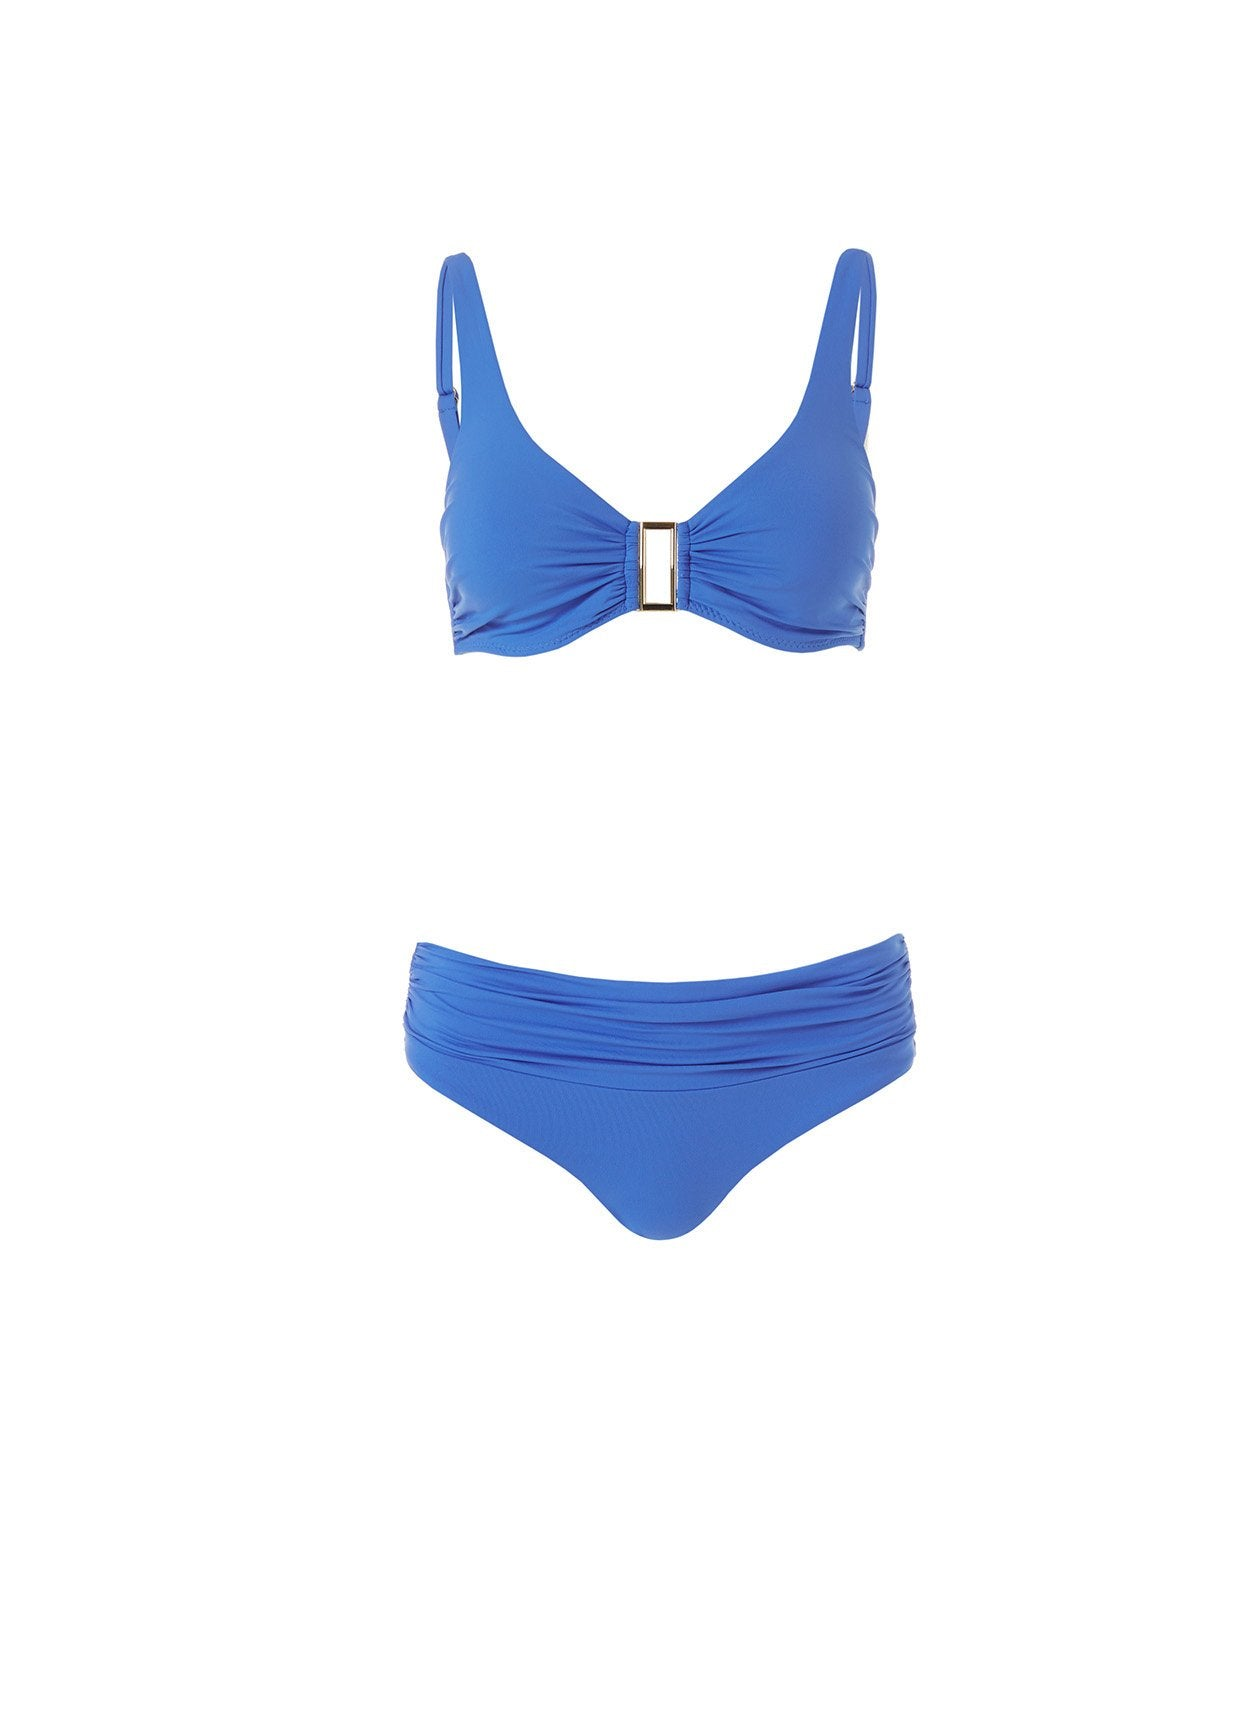 Bel air Royal Blue Bikini